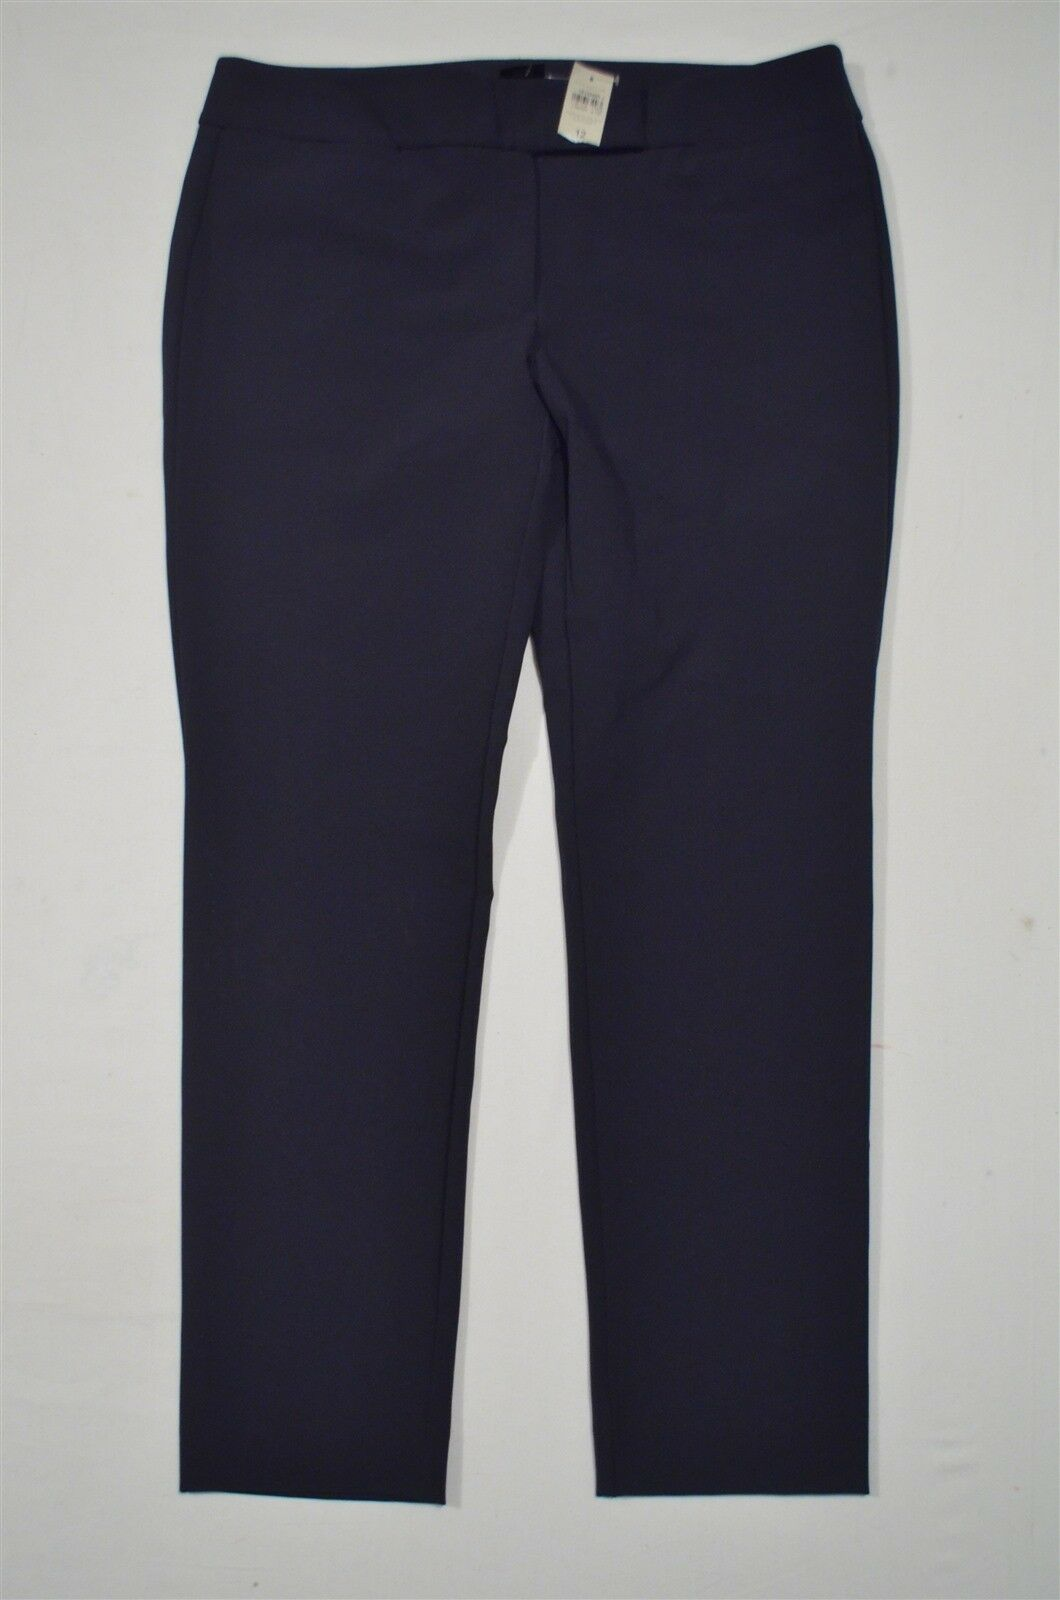 NEW Ann Taylor 12 Navy bluee Modern Skinny Ankle Dress Pants